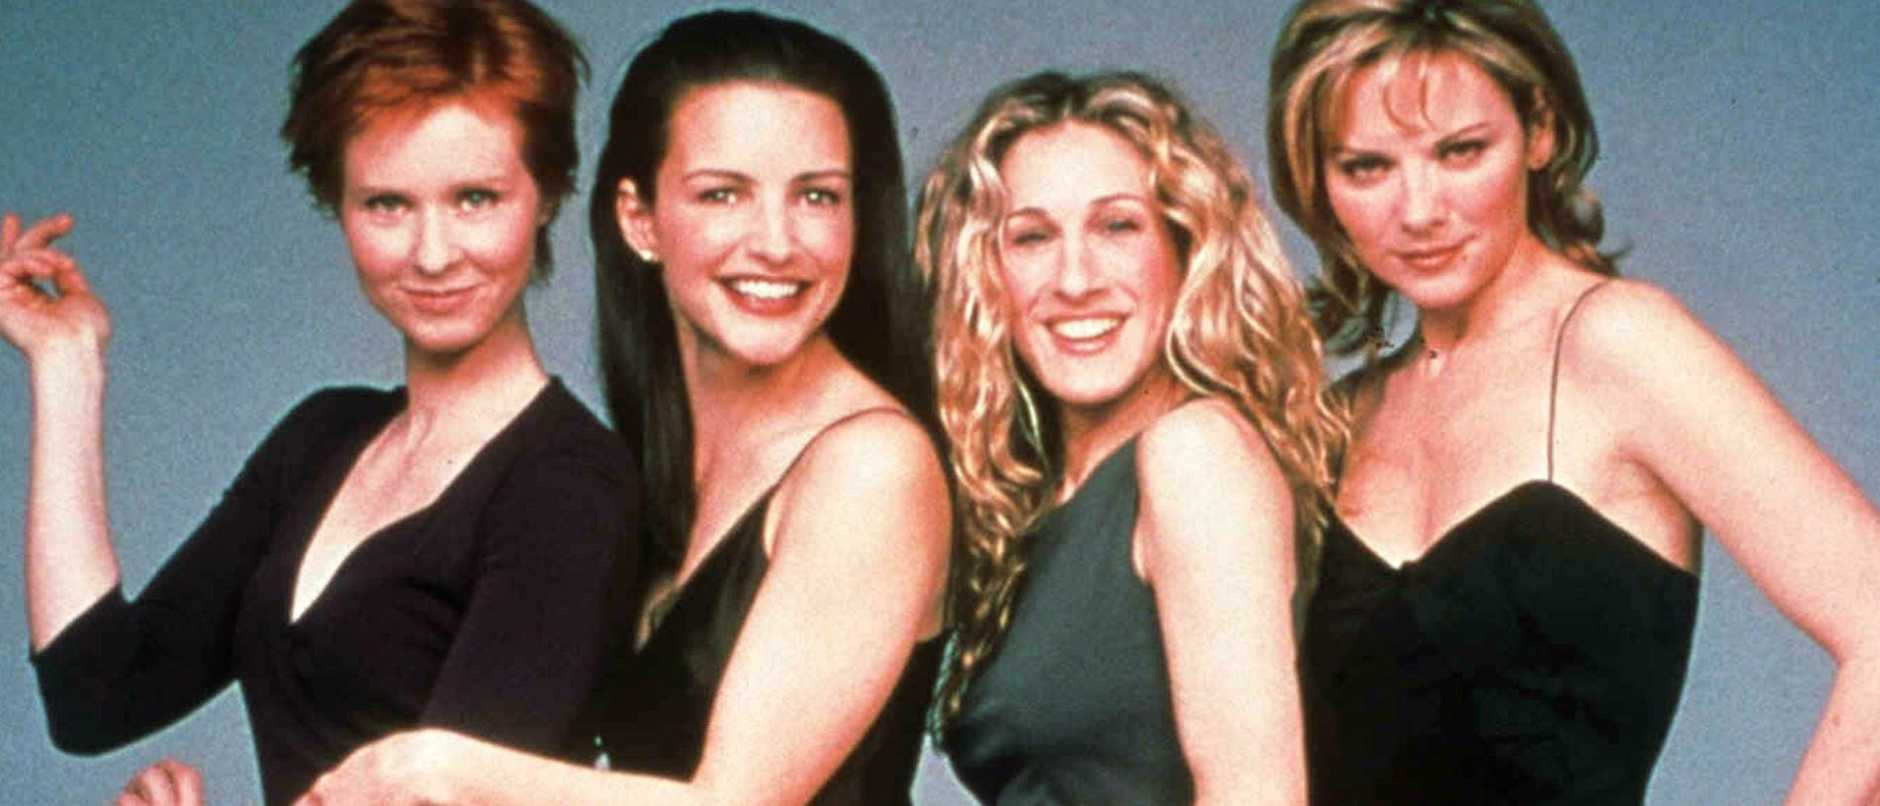 Cynthia Nixon, Kristin Davis, Sarah Jessica Parker and Kim Cattrall  in TV show 'Sex in the City'.